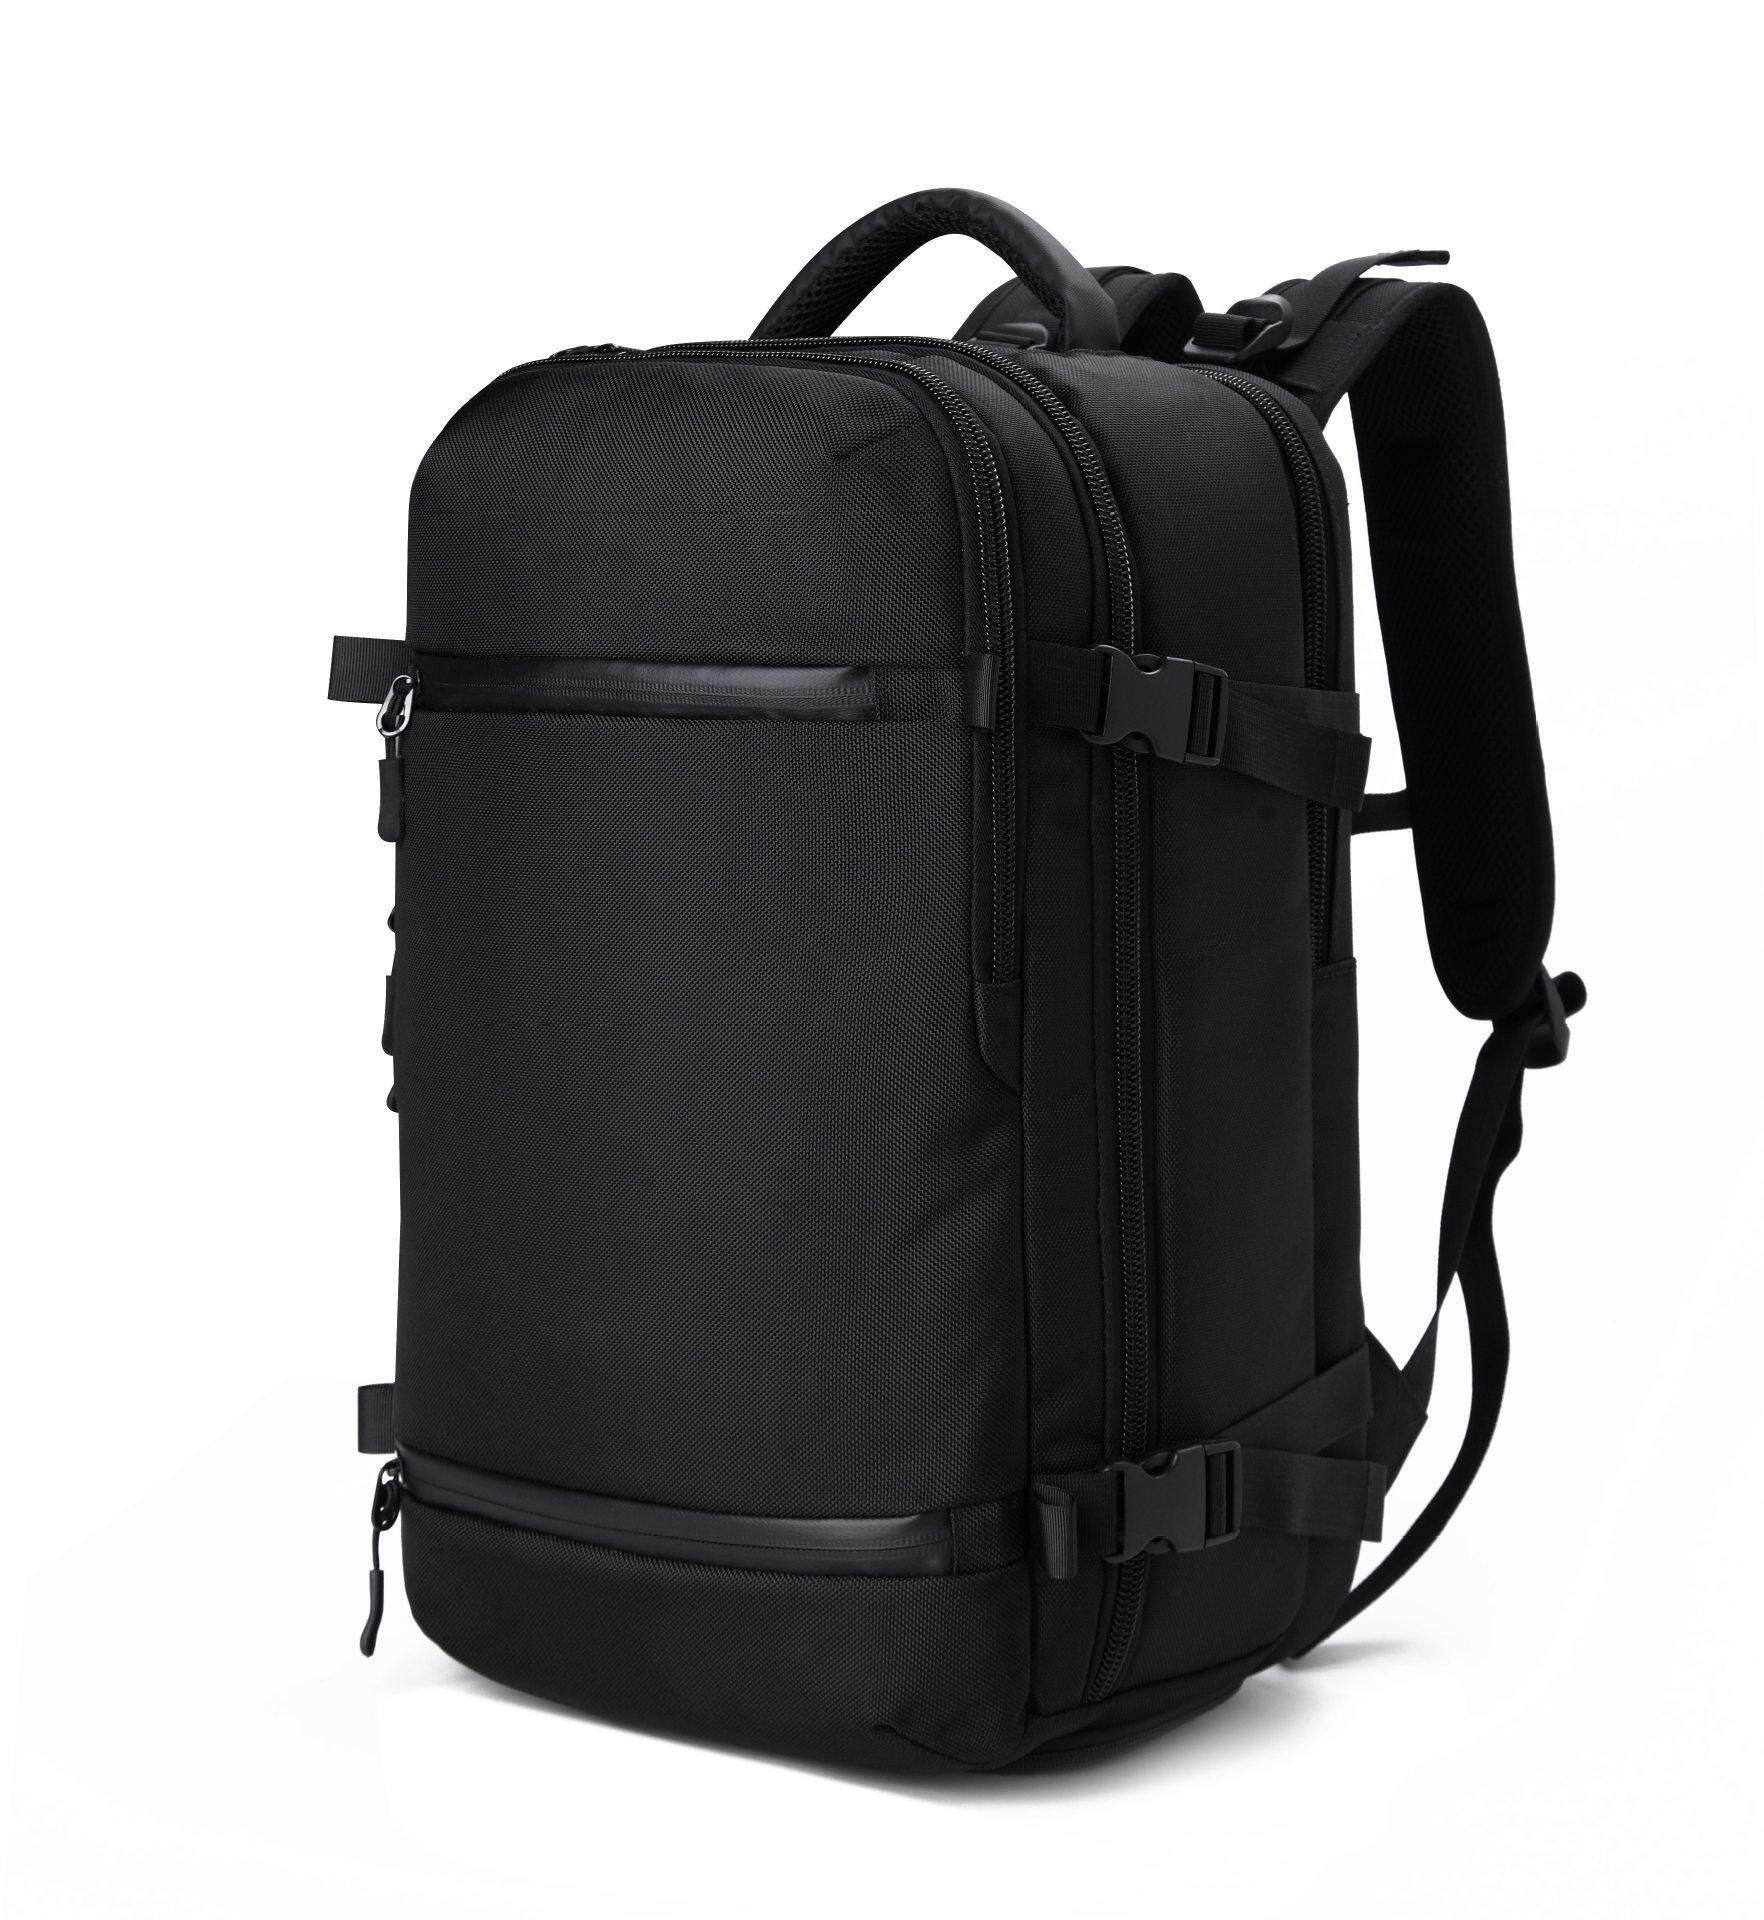 163f0a7e701 Large Capacity Business Trip Laptop Backpack, Anti-theft Water Resistant Bag  With USB Charging